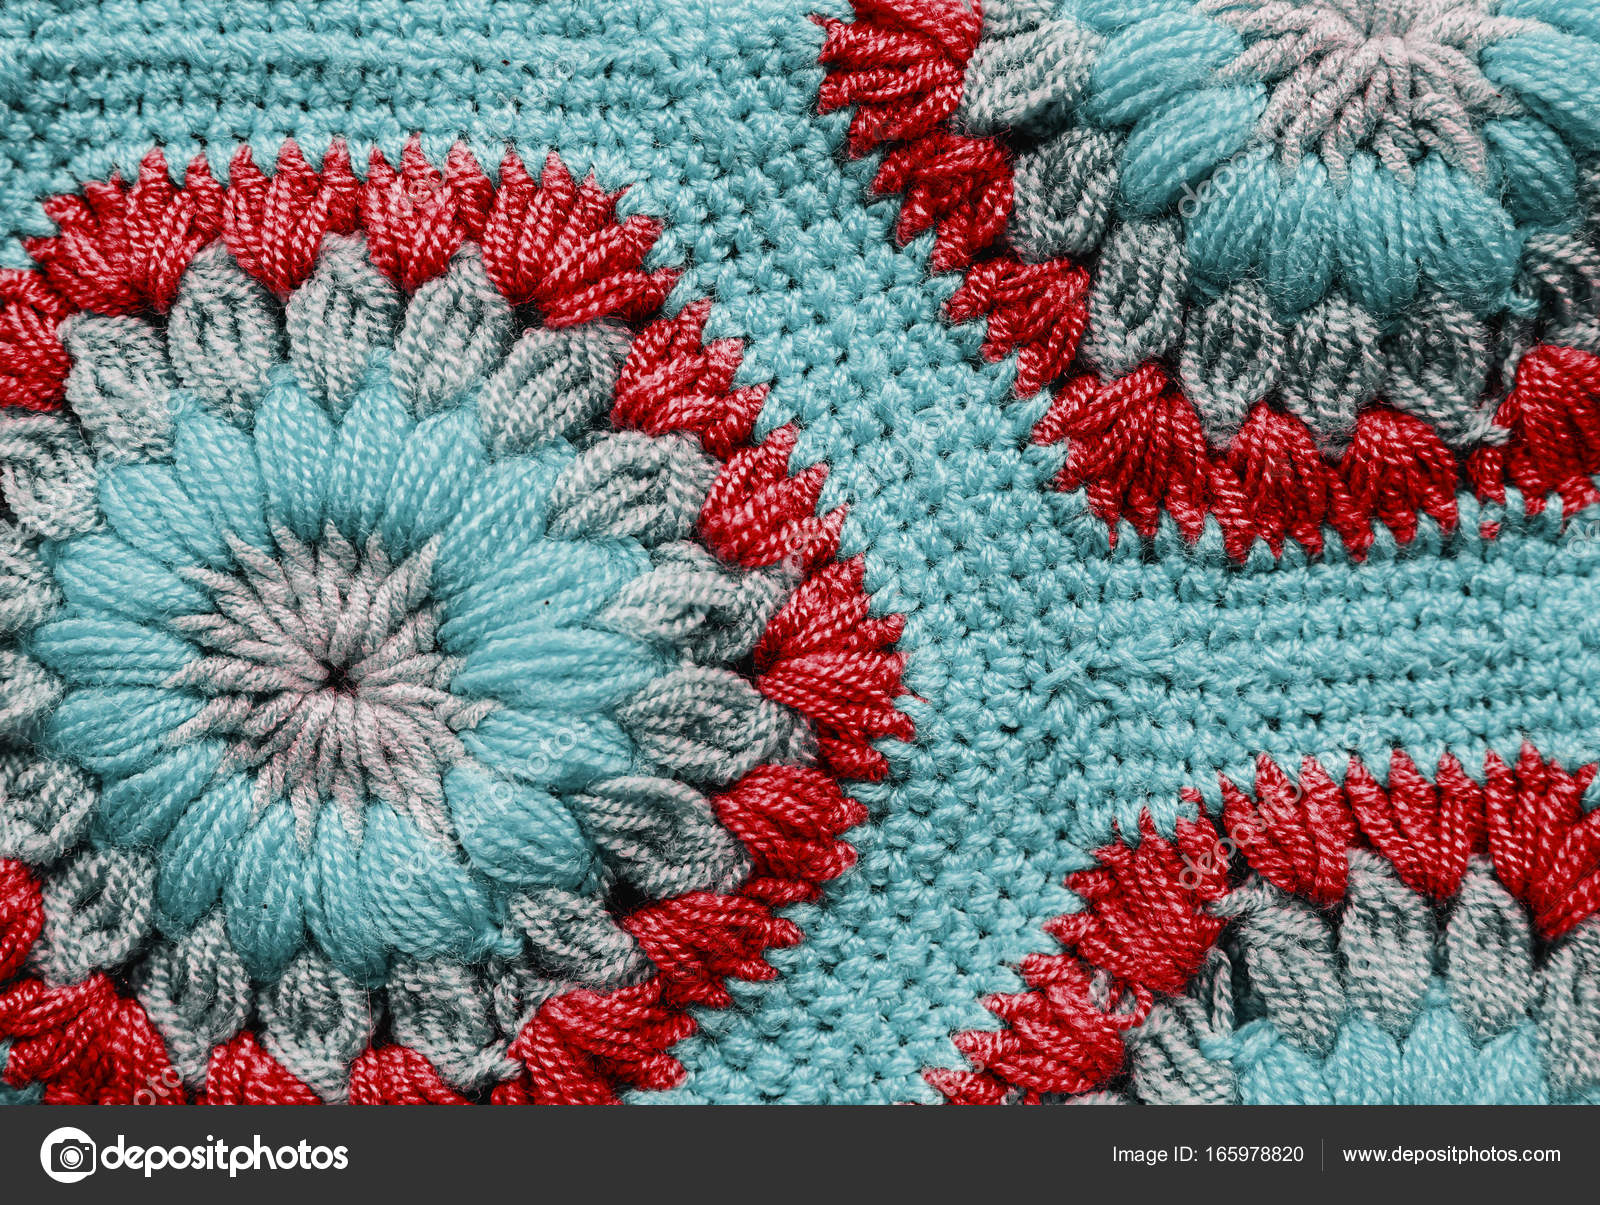 Gestrickte Textil Teppich Muster Makro — Stockfoto © Martyna1802 ...